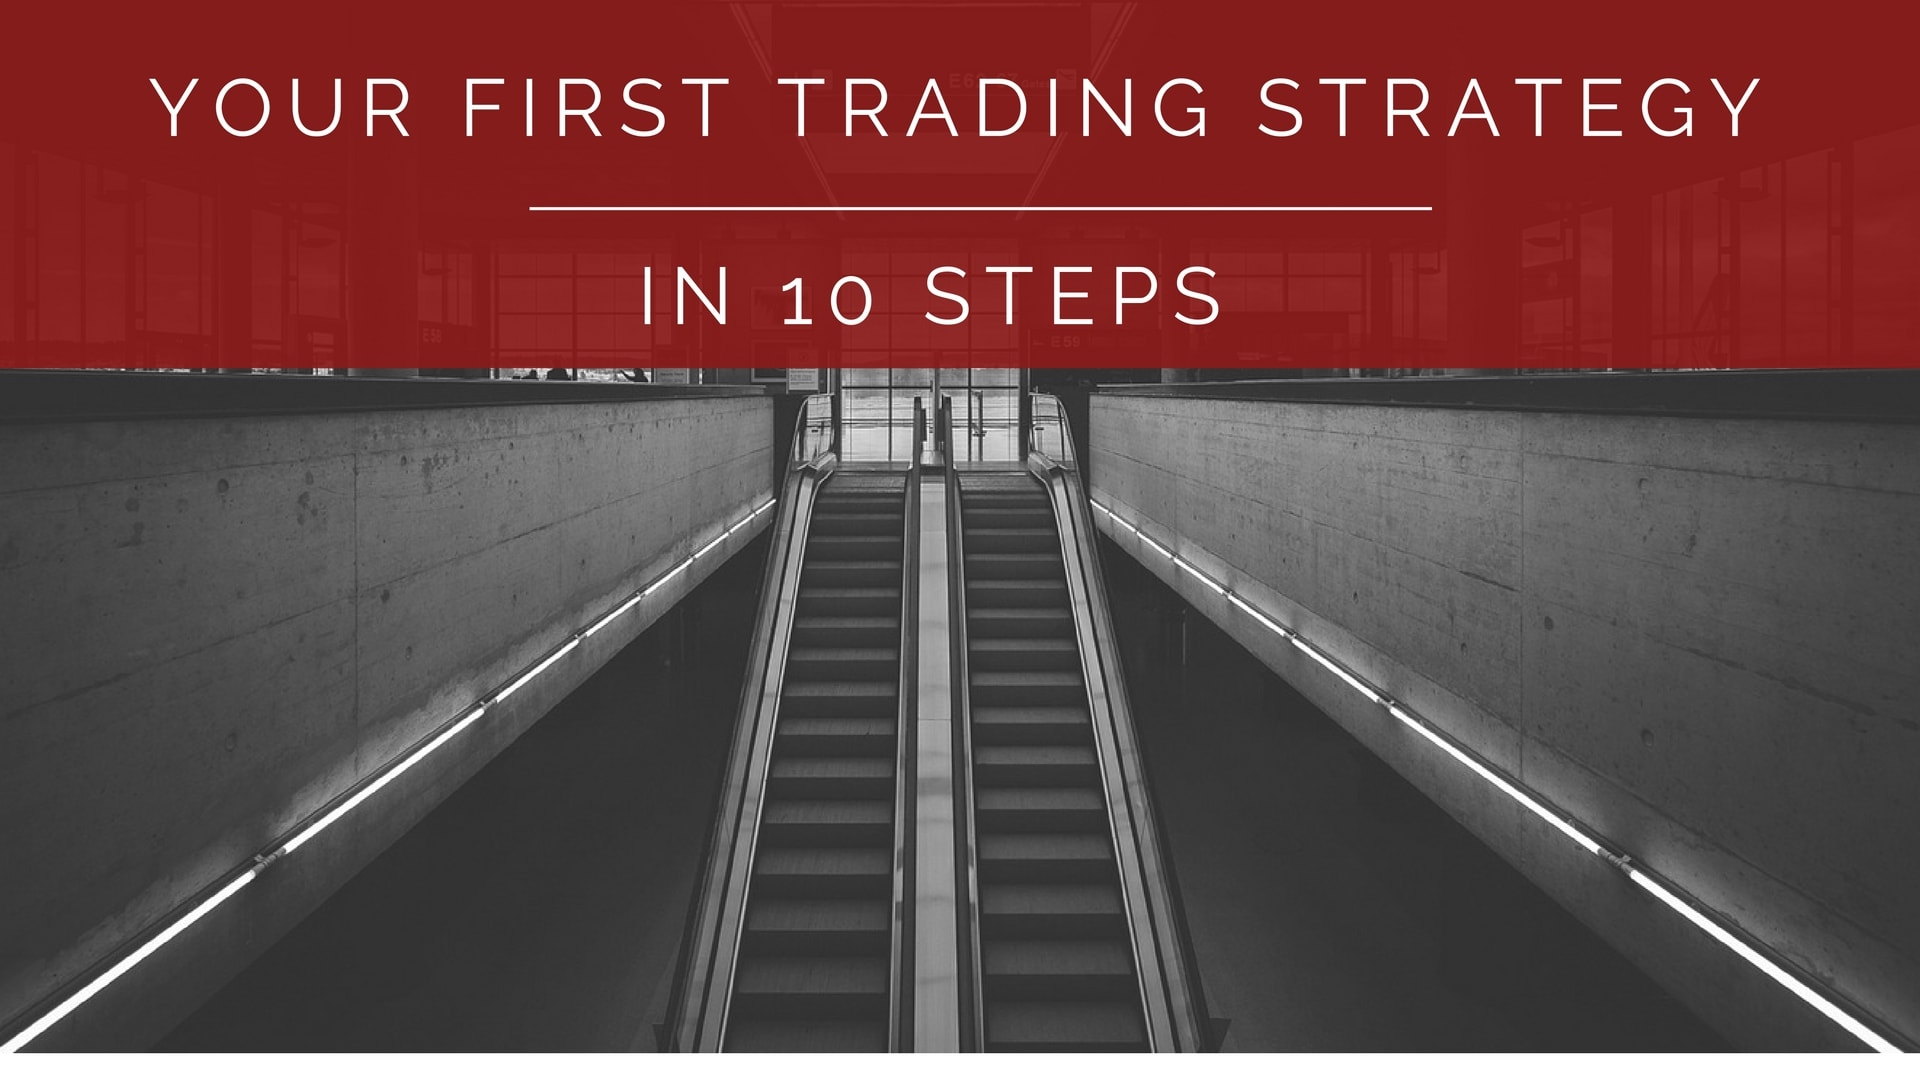 Developing your trading strategy for the first time